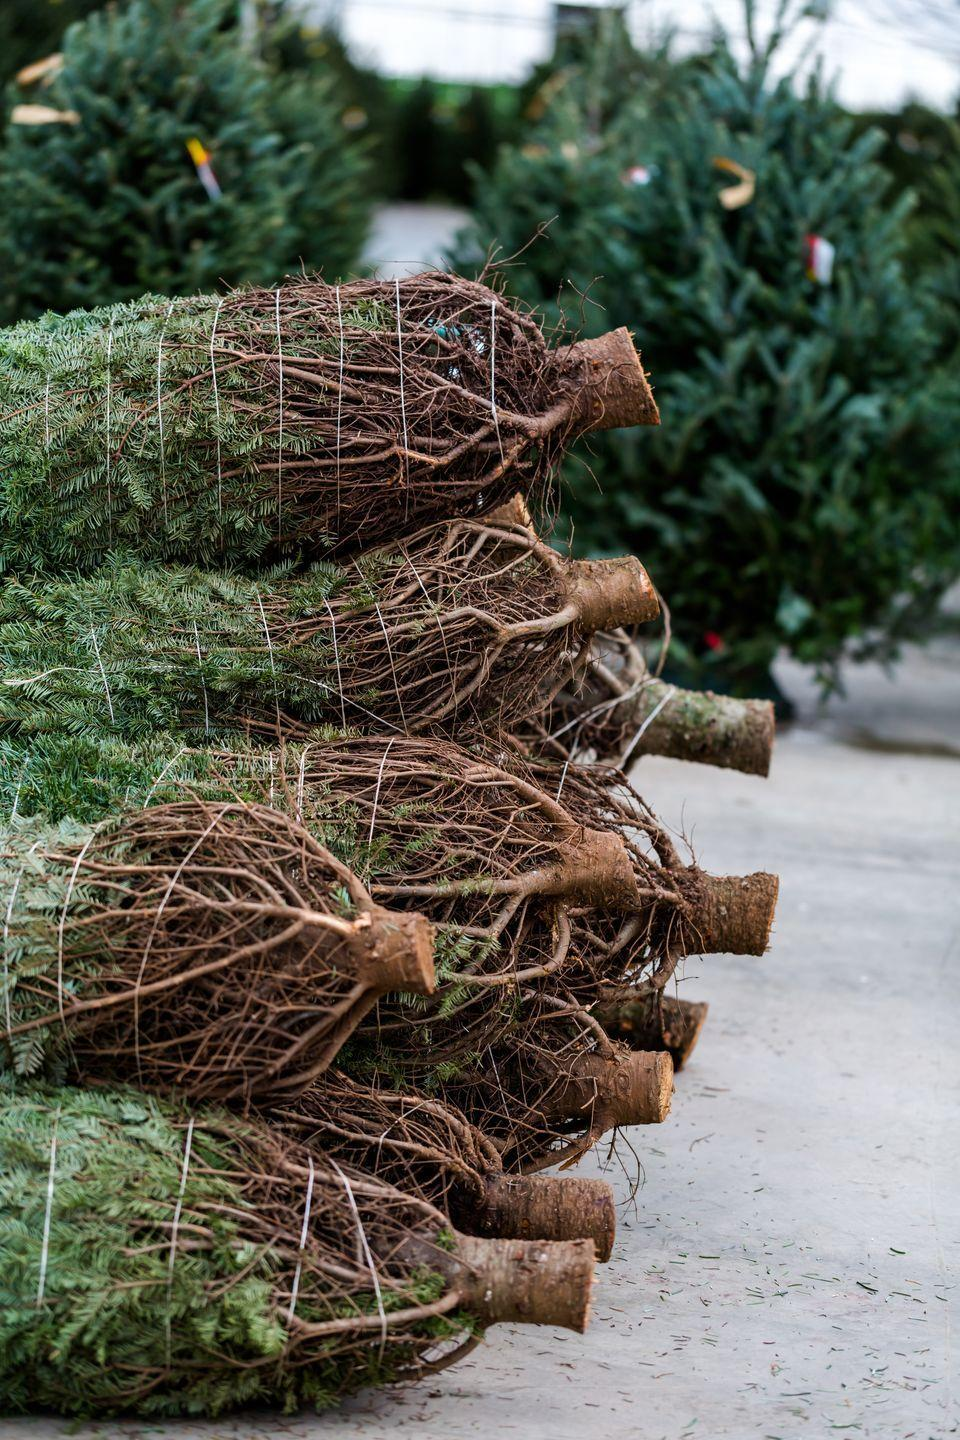 """<p><strong>Midway, Georgia</strong> (Starting November 29)</p><p>Cut your own tree, hop on for a hayride, and try to spot a wild turkey on <strong><a href=""""http://www.brewerchristmastreefarm.com/directions.htm"""" rel=""""nofollow noopener"""" target=""""_blank"""" data-ylk=""""slk:Brewer's Christmas Tree-Blueberry Farm"""" class=""""link rapid-noclick-resp"""">Brewer's Christmas Tree-Blueberry Farm</a></strong>. Santa comes around on occasion, probably because of the farm's homemade jams, jellies, and their hefty supply of cookies. </p>"""